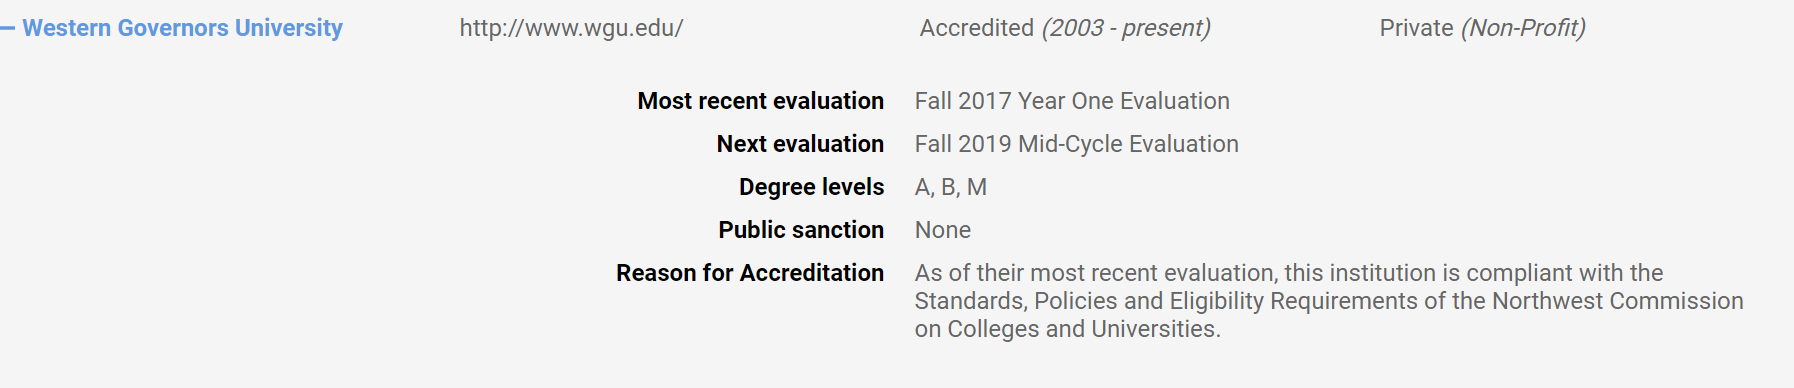 Image of the Northwest Commission on Colleges and Universities (NWCCU) WGU Accreditation.